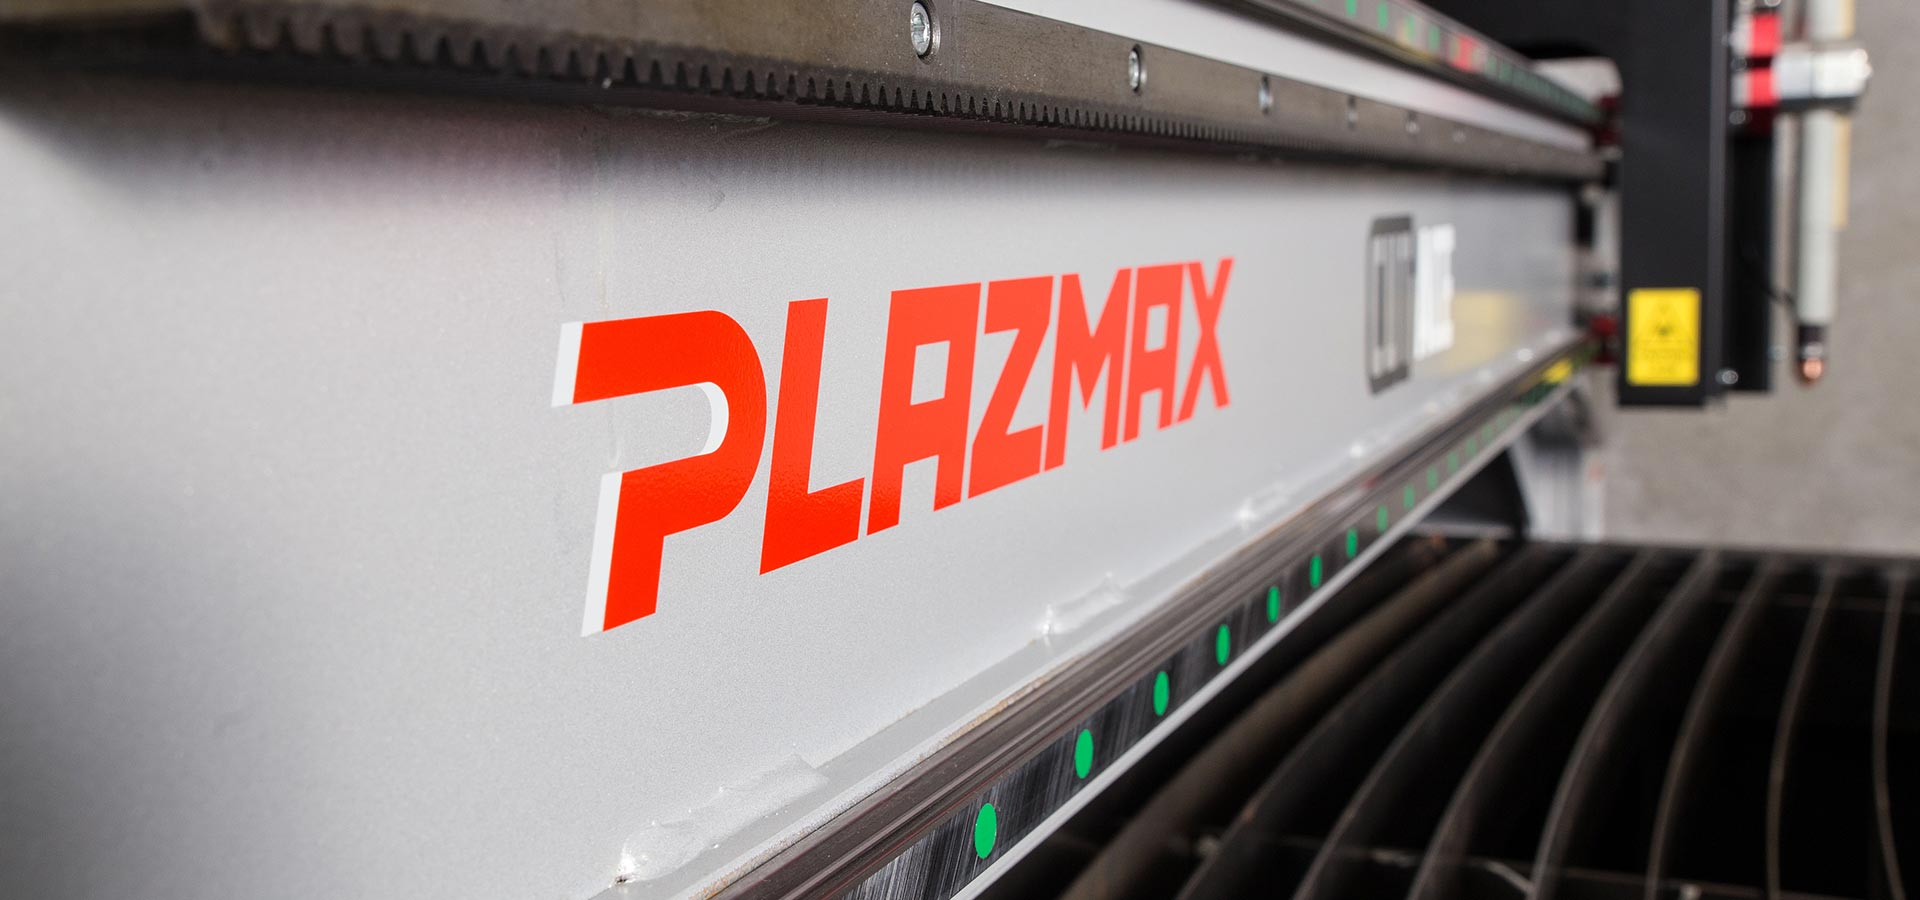 Plazmax Technologies New Zealand for CNC Plasma Cutting solutions